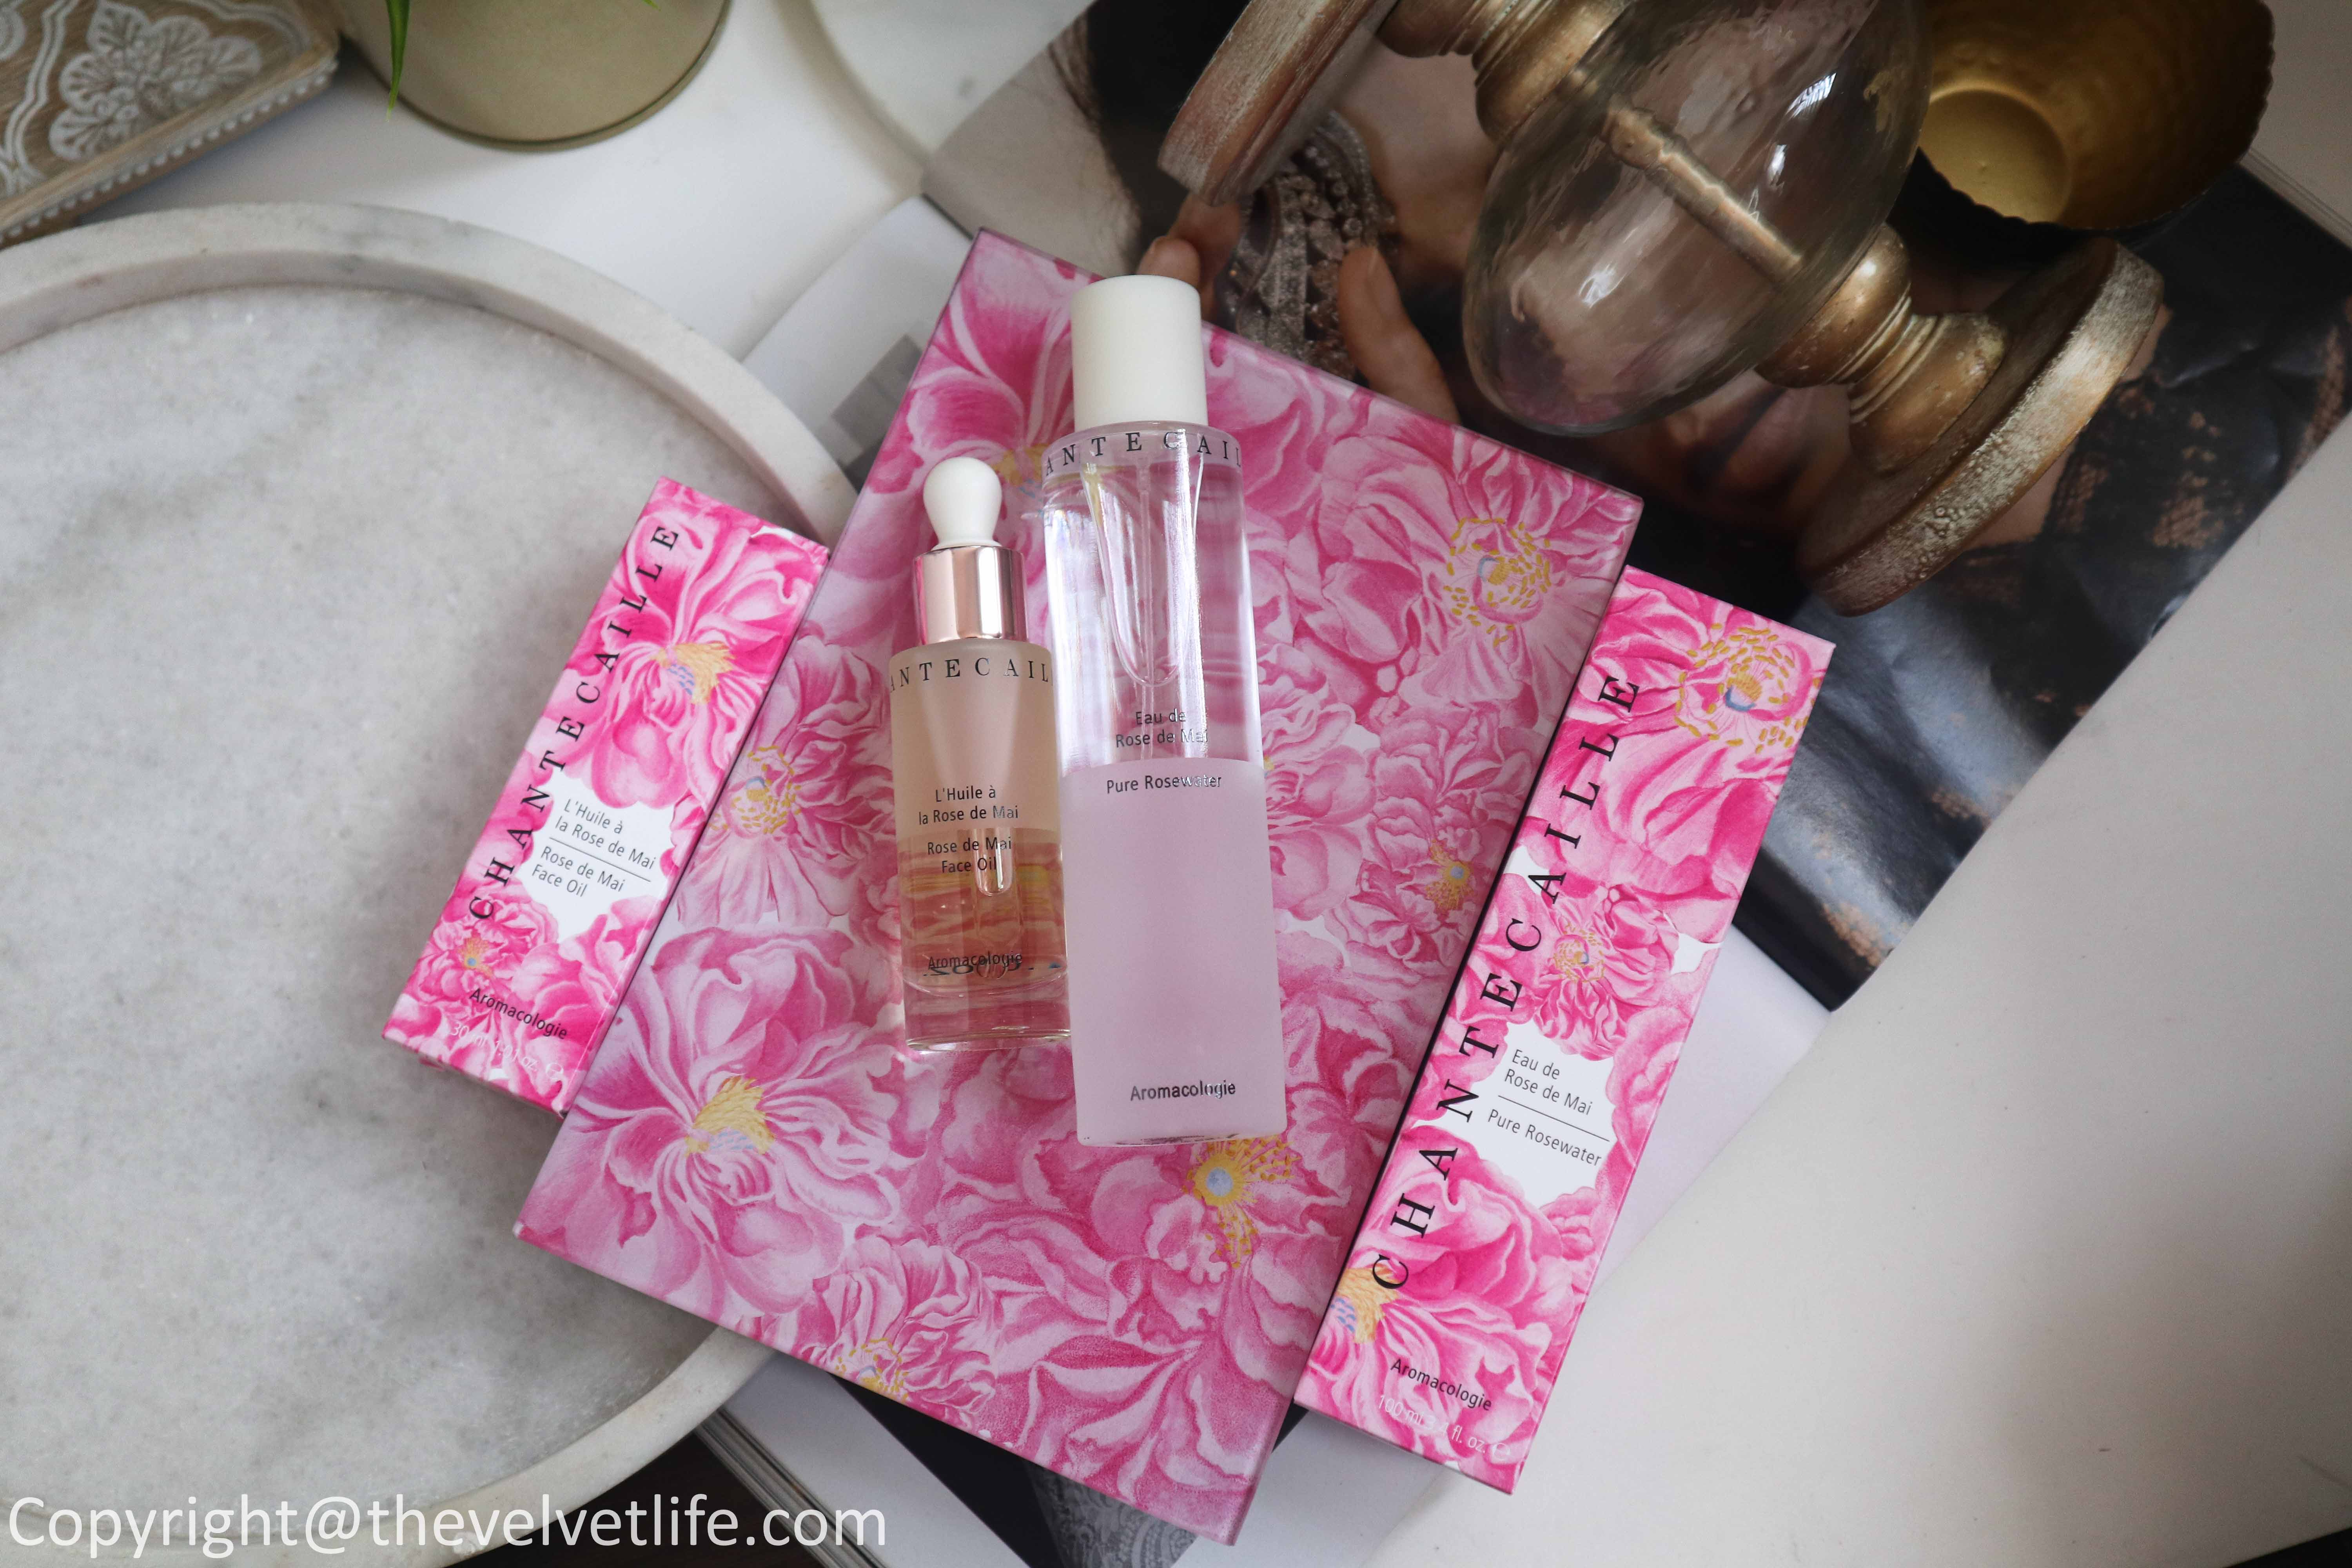 Review of the new John Derian x Chantecaille Rose de Mai Harvest Set which includes Pure rosewater, Rose de Mai face oil, Rose de mai harvest tray